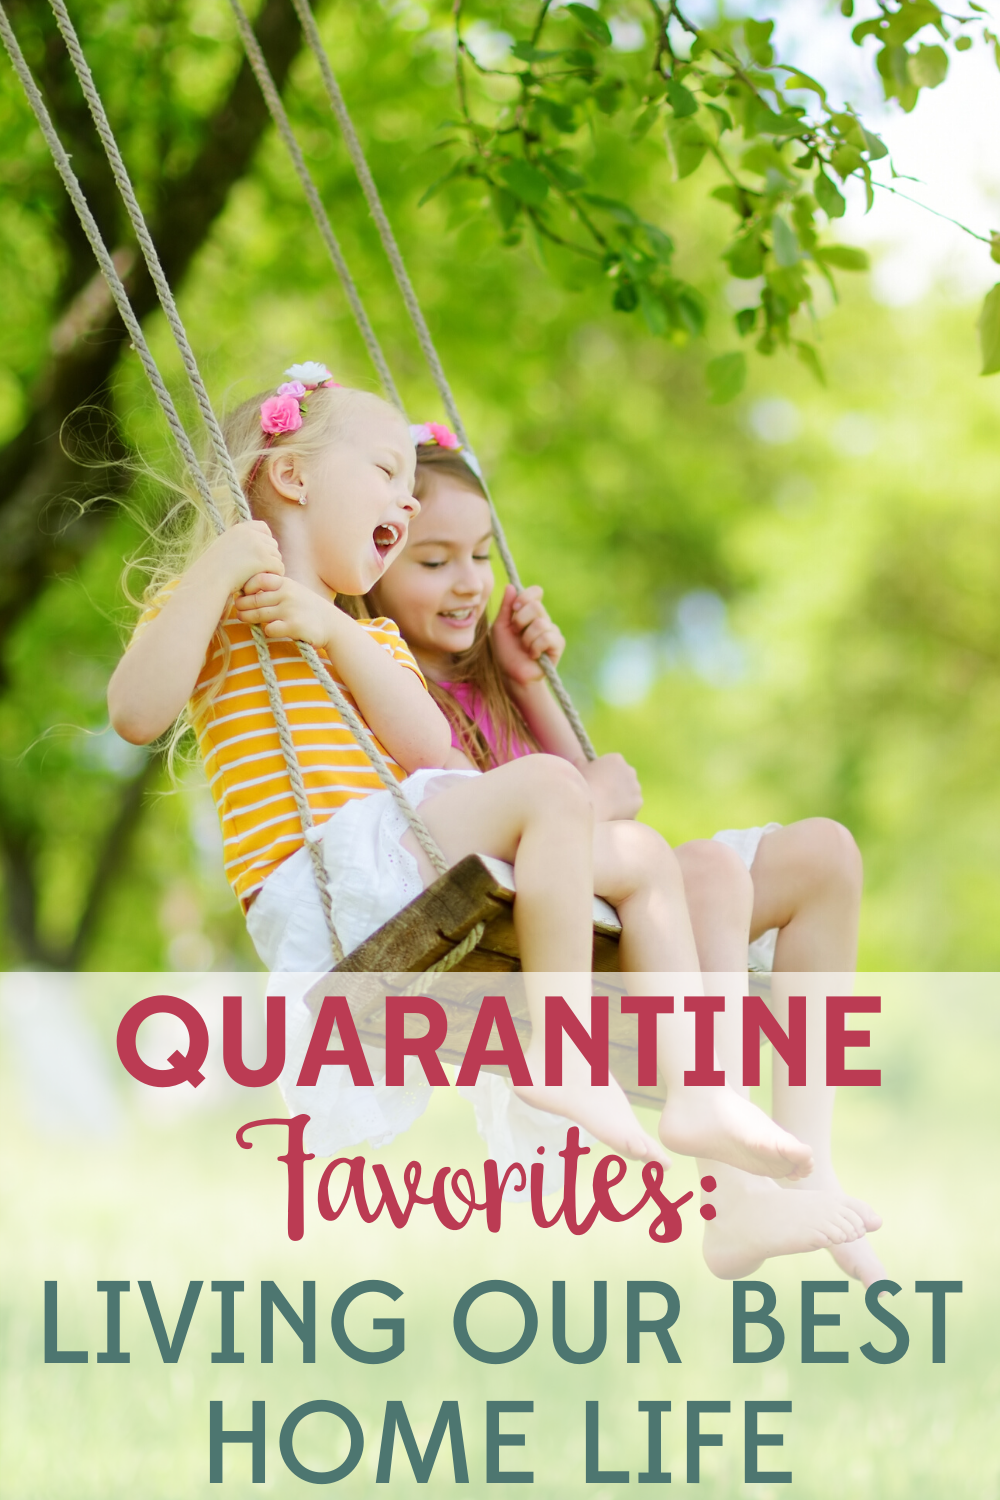 Being stuck at home doesn't have to feel like punishment! Check out our quarantine favorites for living your best home life.